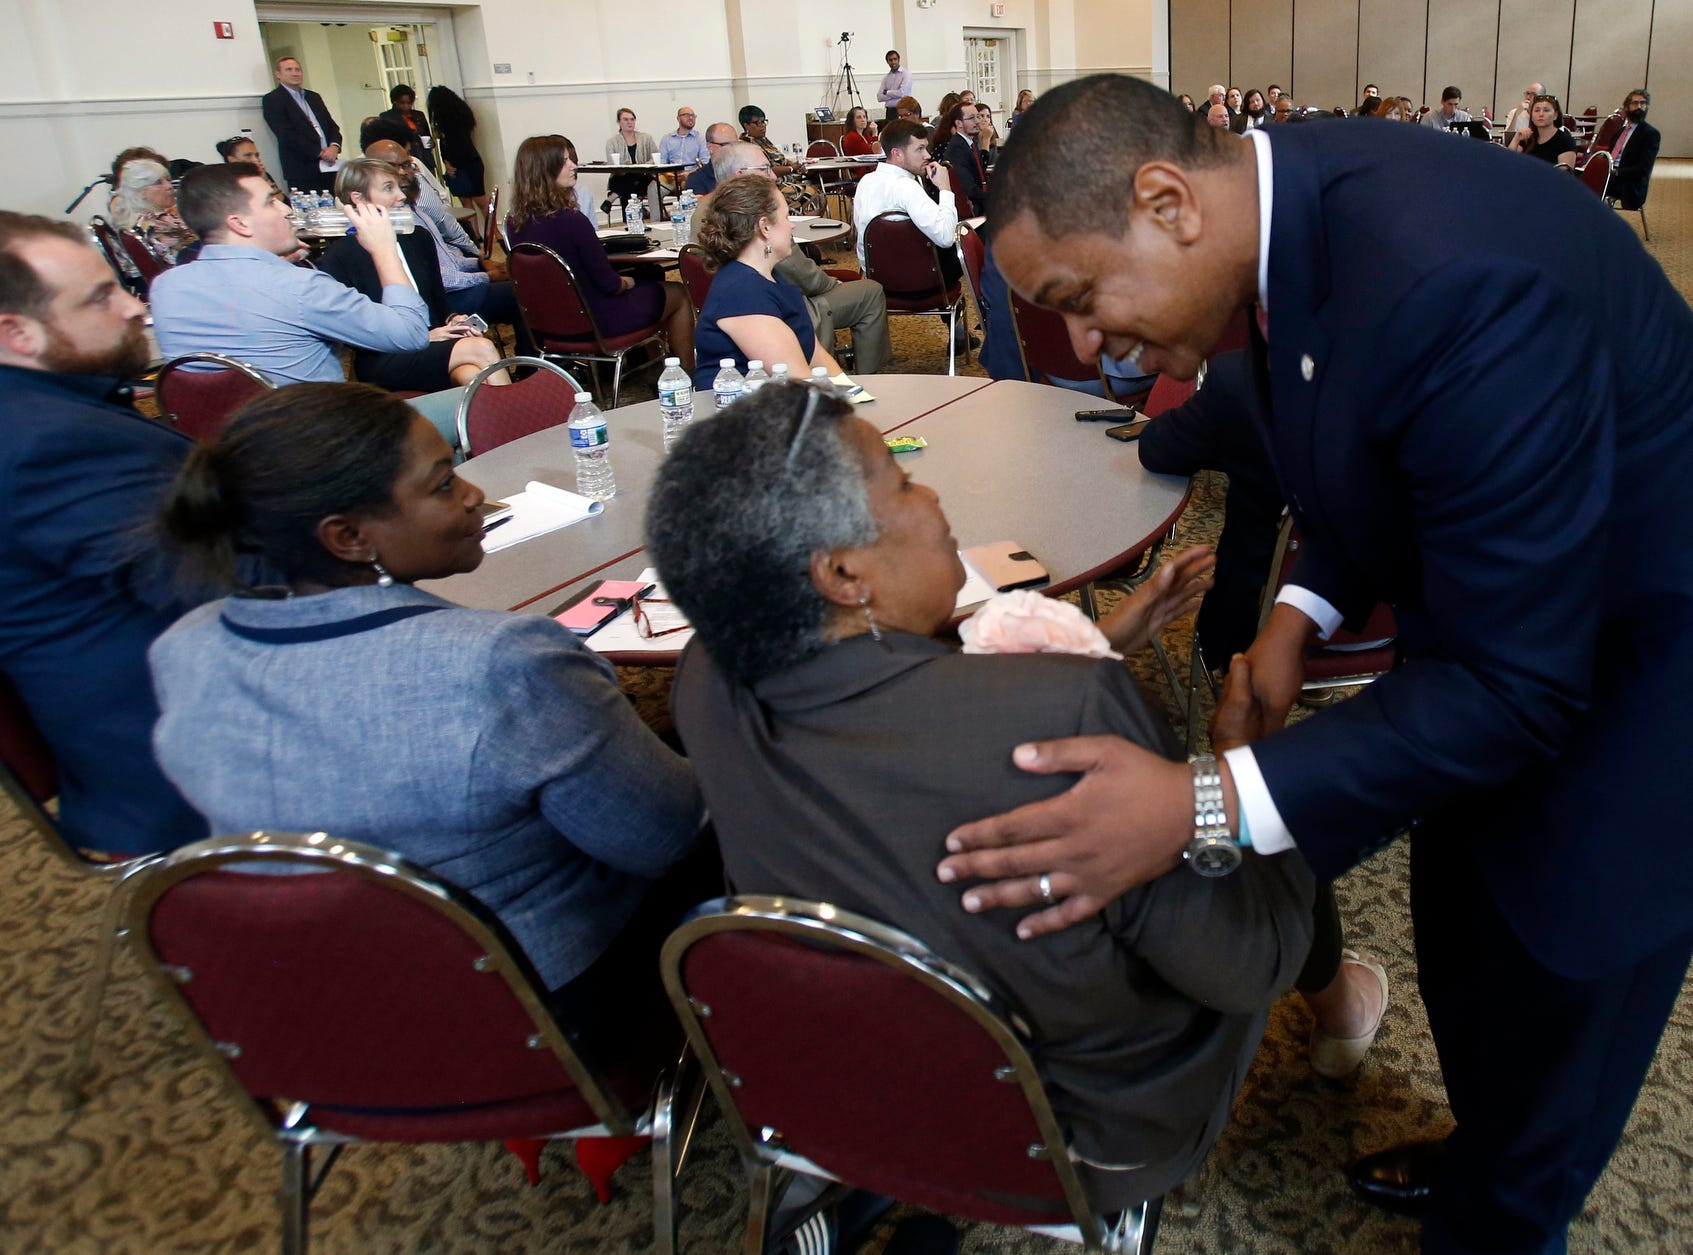 Justin Fairfax greets attendees after remarks at a meeting of the Campaign to reduce evictions at a church meeting room in Richmond, Va., on ,Sept. 25, 2018.